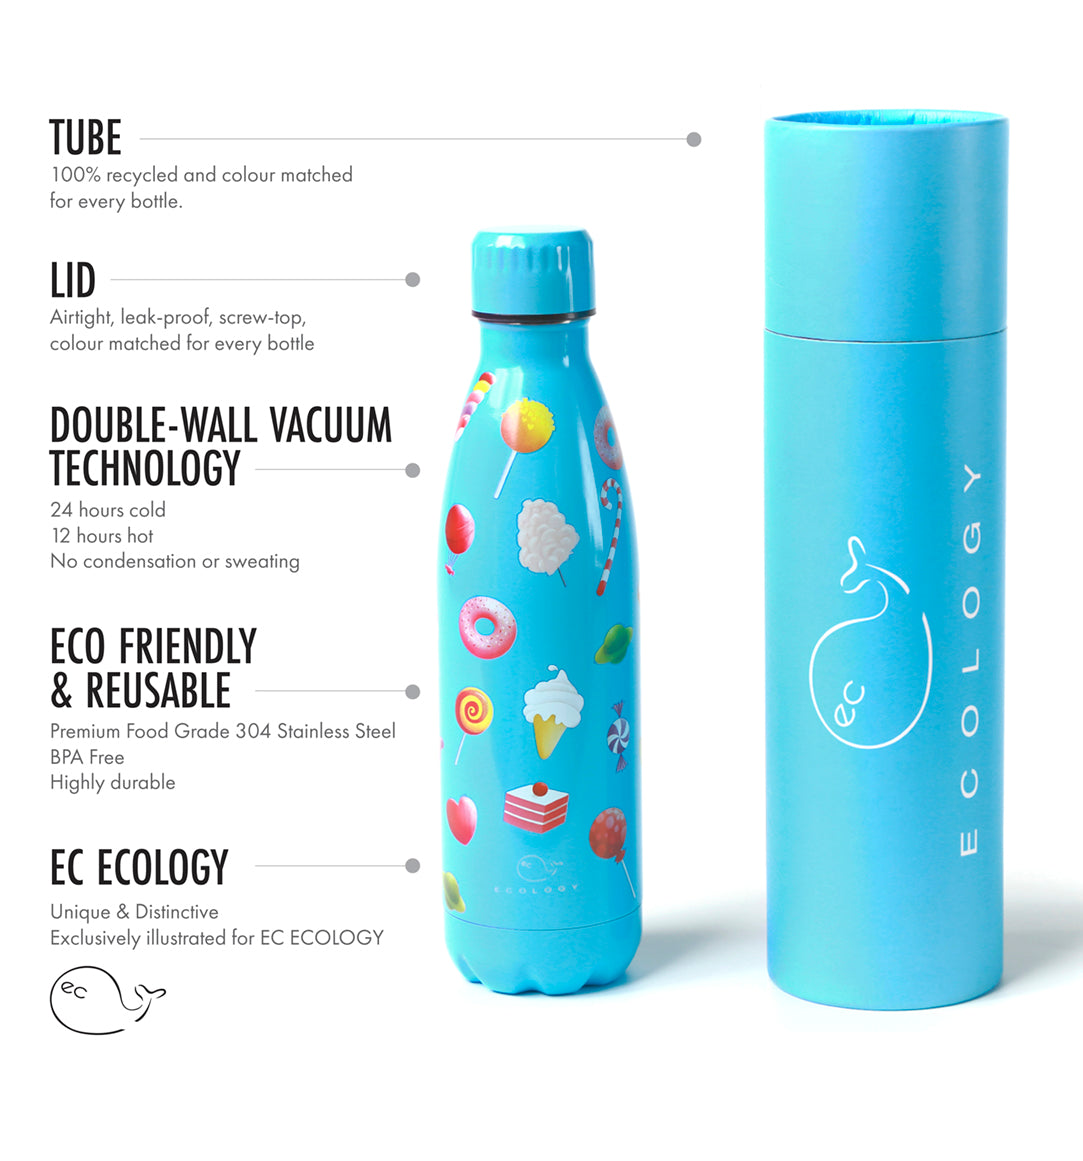 CANDYLAND EC Ecology 500ml Reusable Drinks Bottle - BPA Free Stainless Steel - Double Walled Vacuum Insulated